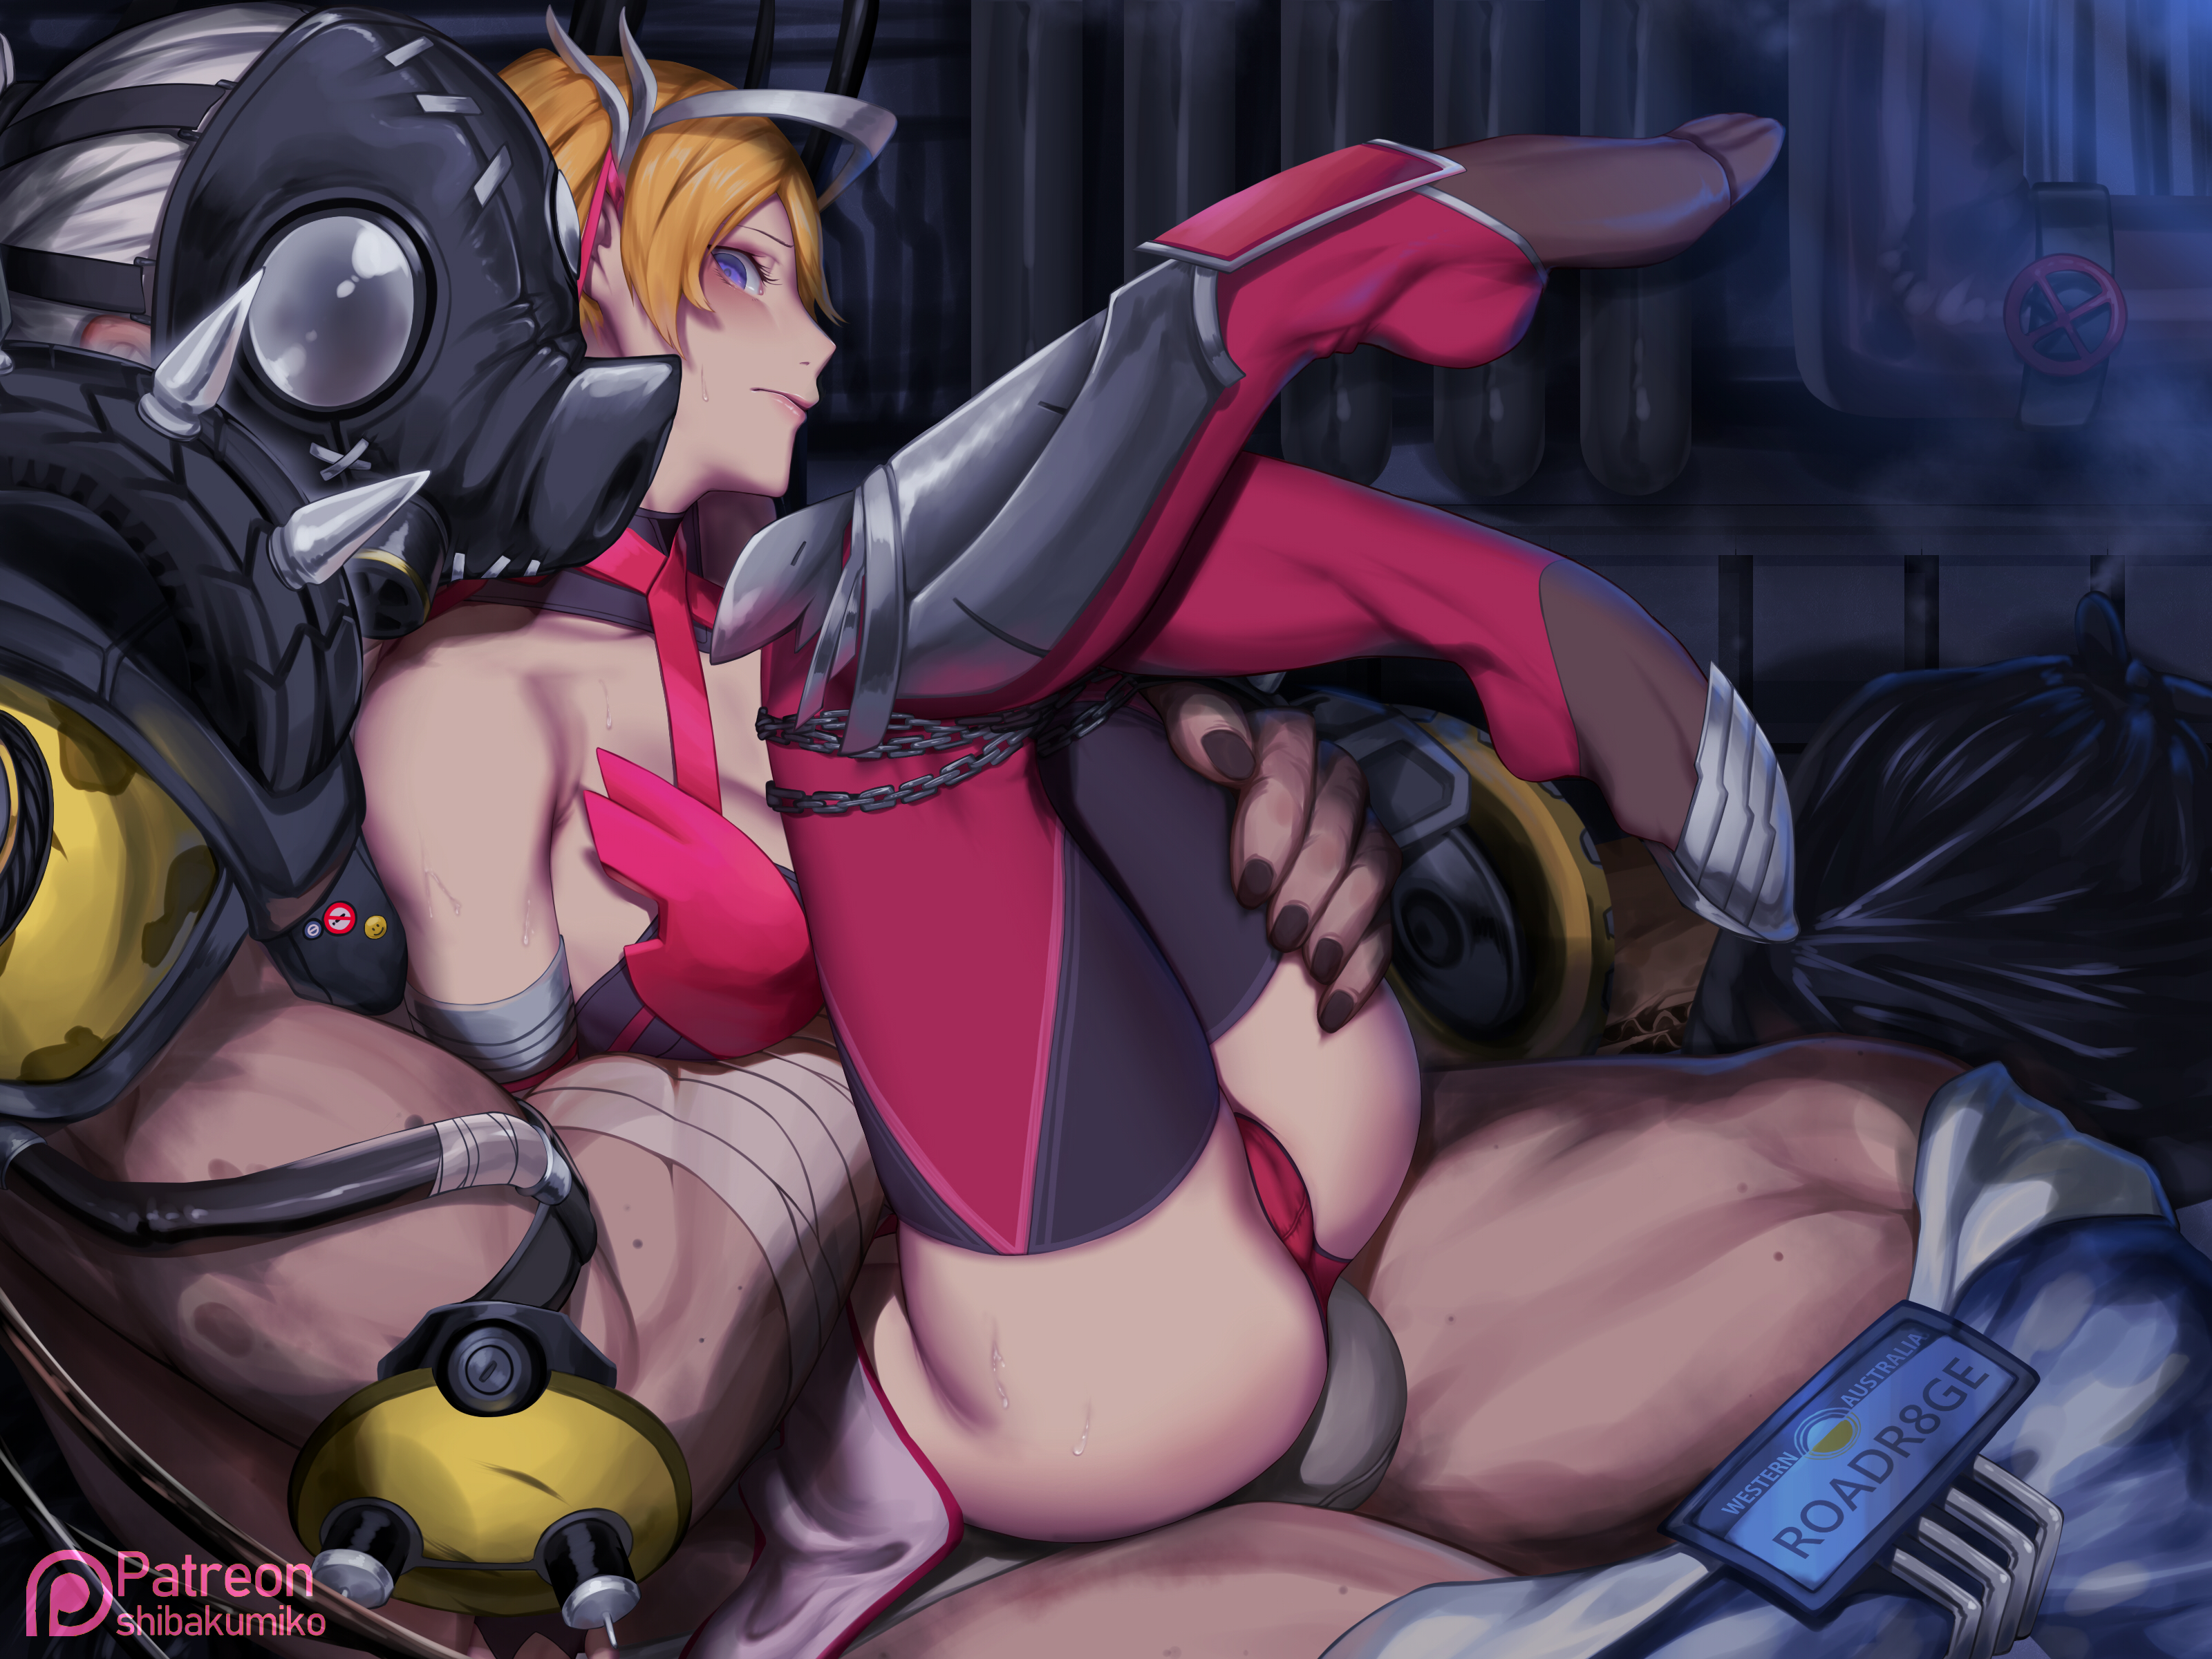 Mercy and Roadhog